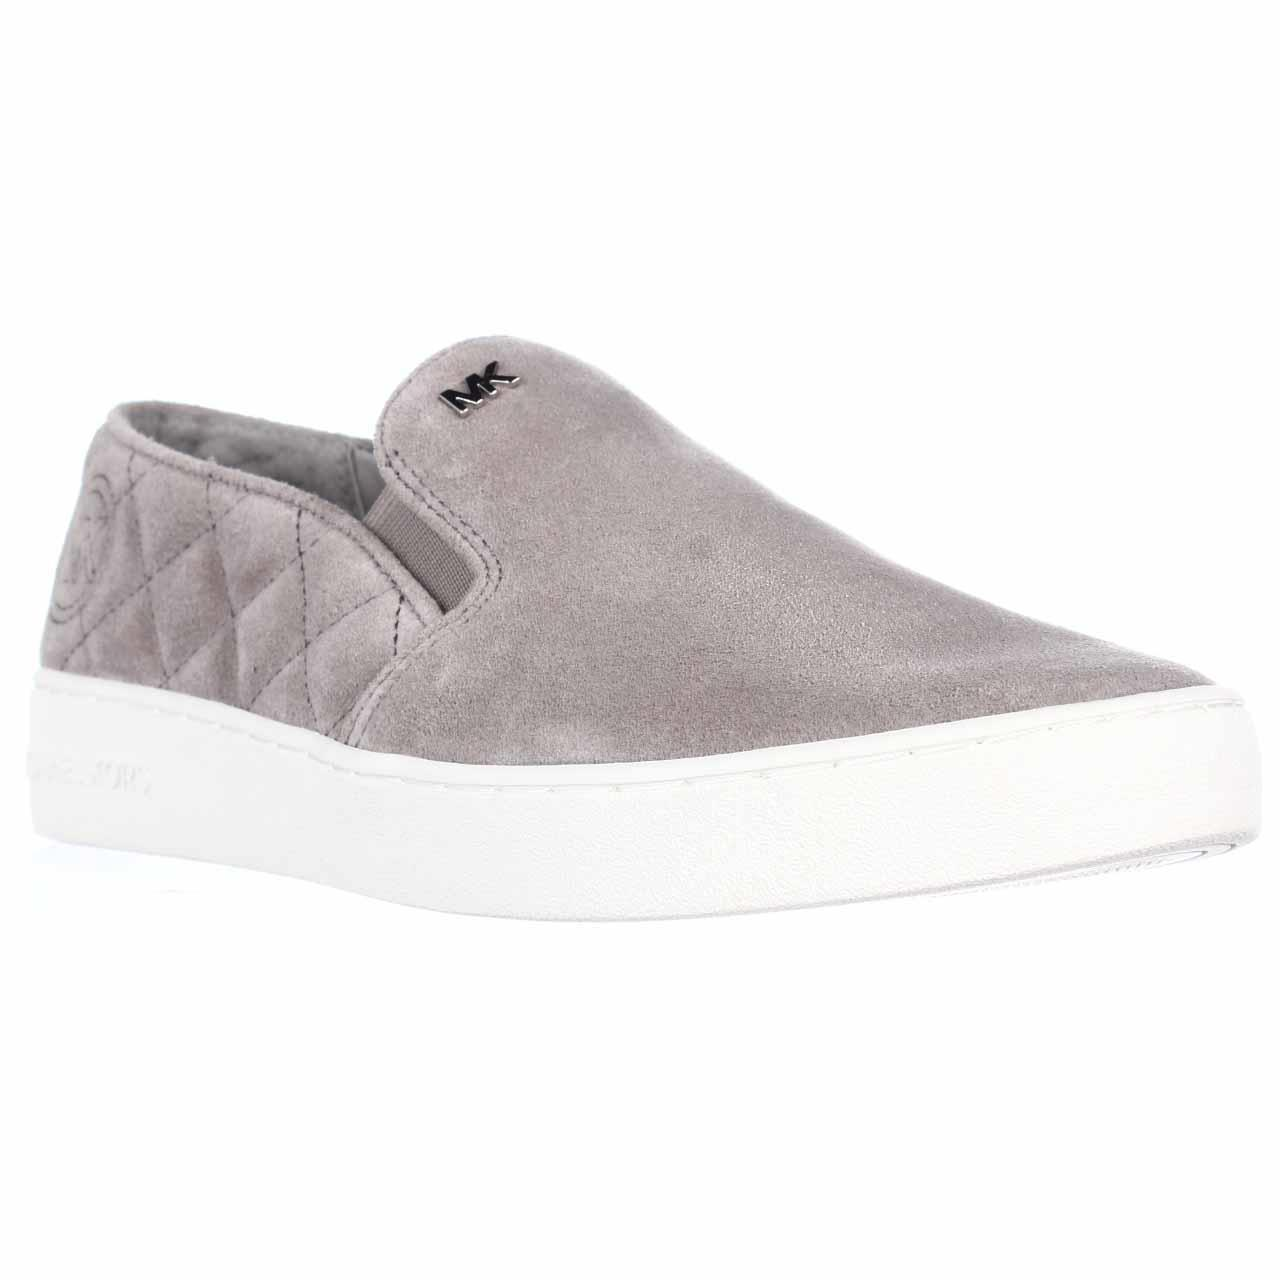 Womens MICHAEL Keaton Quilted Slip-On